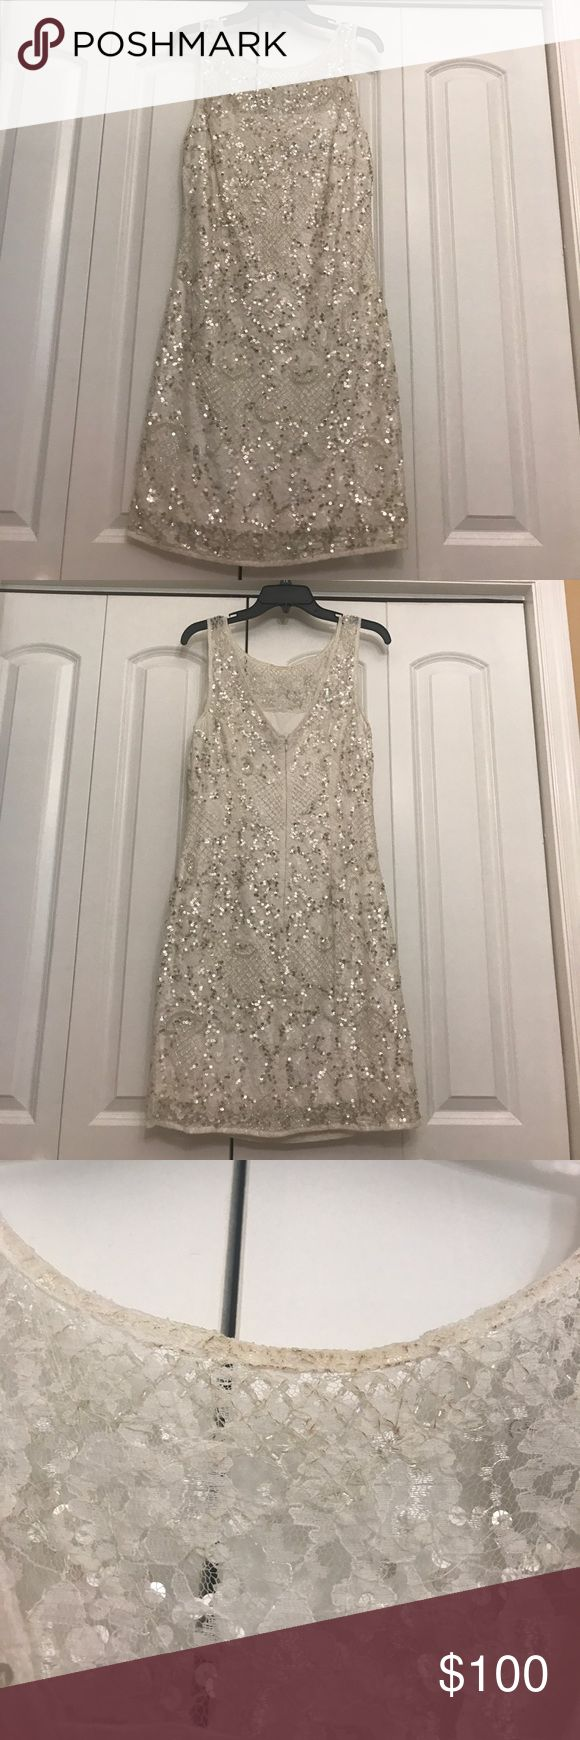 Aidan Mattox dress Aidan Mattox dress size 14 bought at Bloomingdales. Only worn once at My Engagement party. In great condition. Just a stain on back collar. Could be removed. Aidan Mattox Dresses Mini